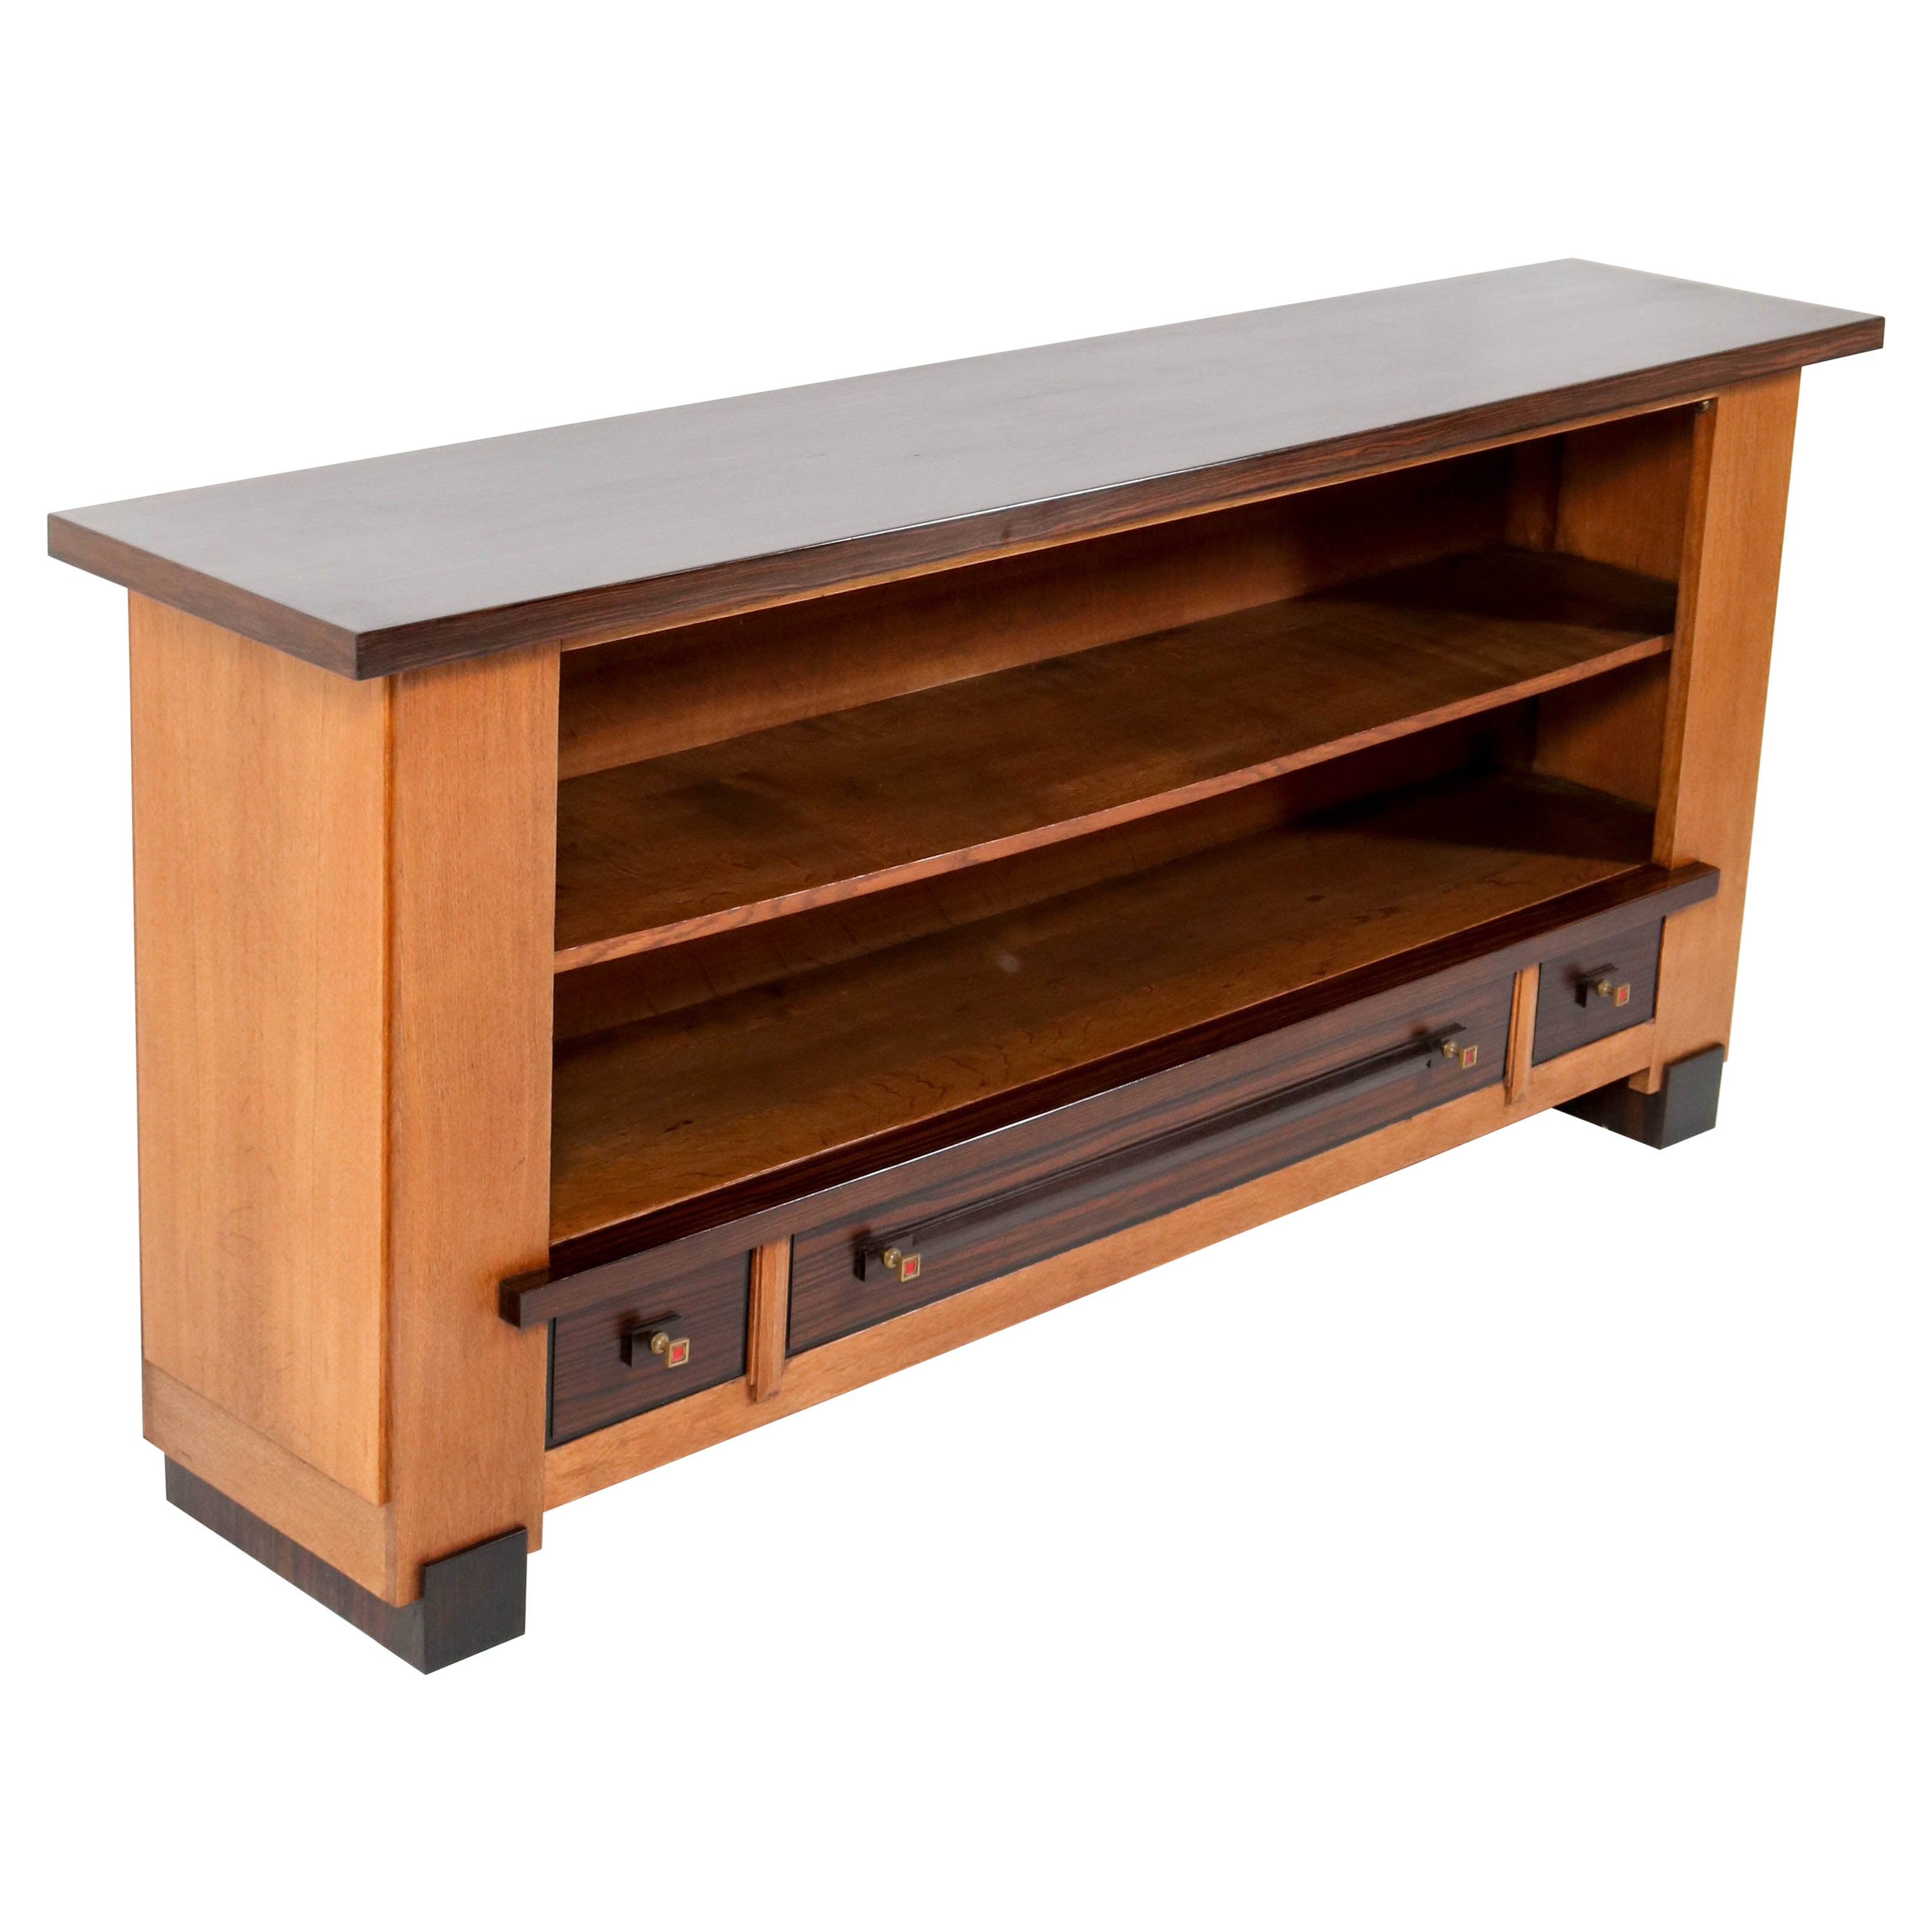 Oak Art Deco Haagse School Credenza or Bookcase by Hendrik Wouda for H. Pander